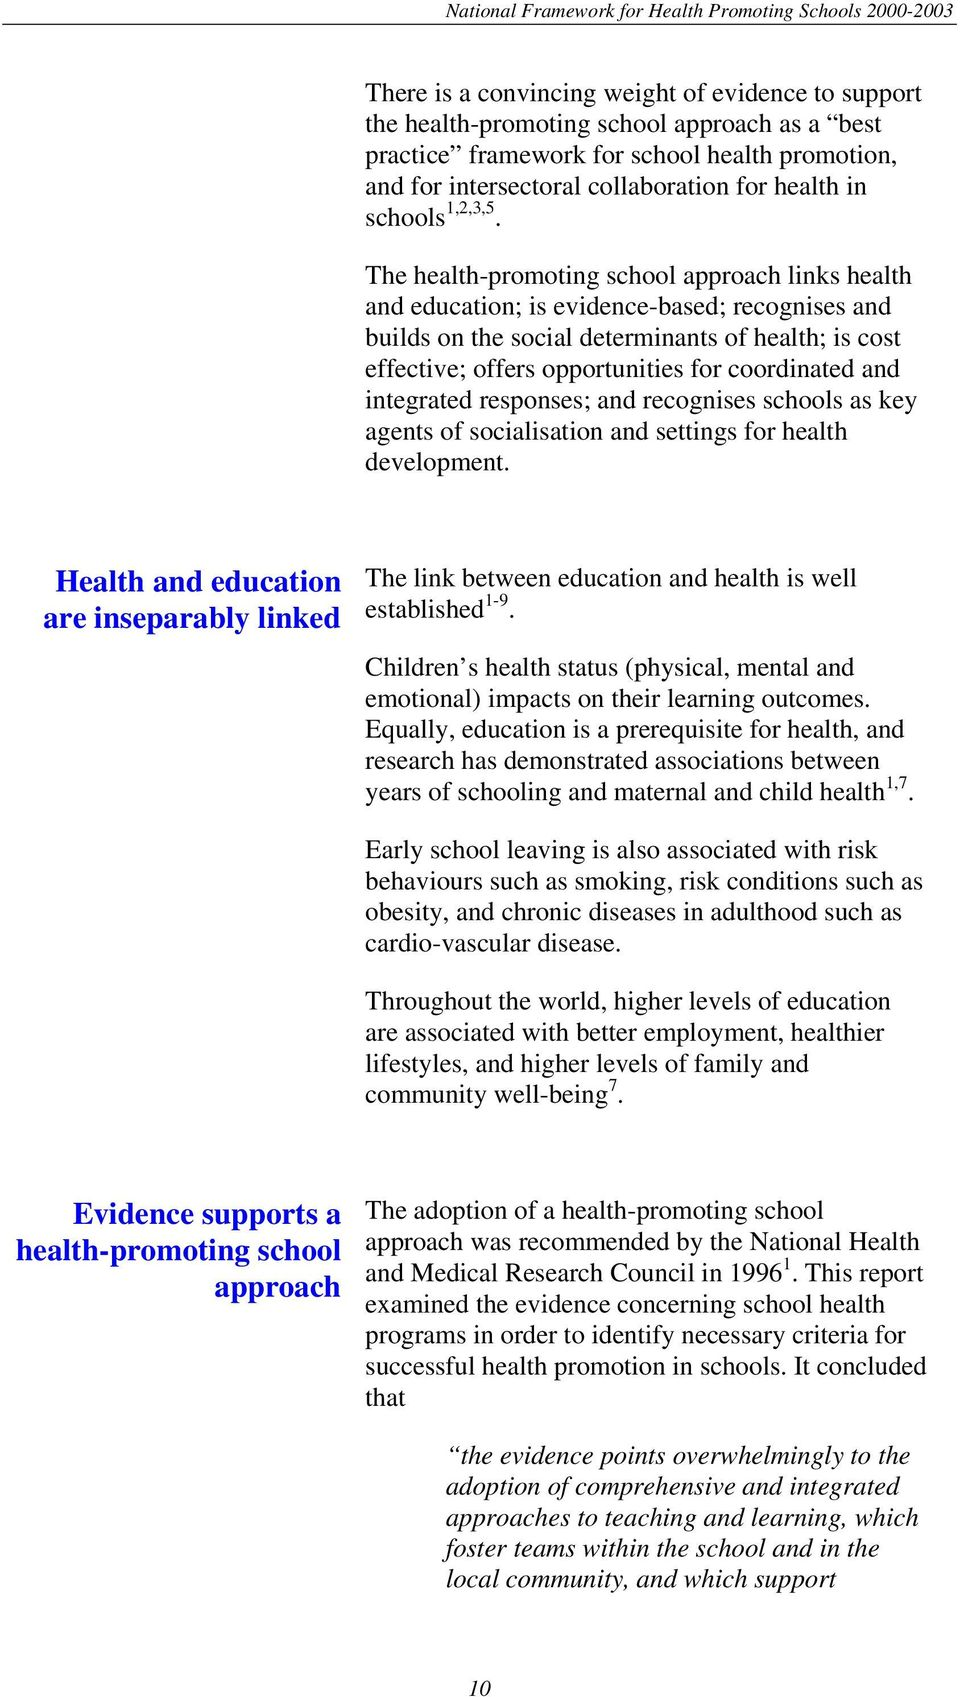 The health-promoting school approach links health and education; is evidence-based; recognises and builds on the social determinants of health; is cost effective; offers opportunities for coordinated